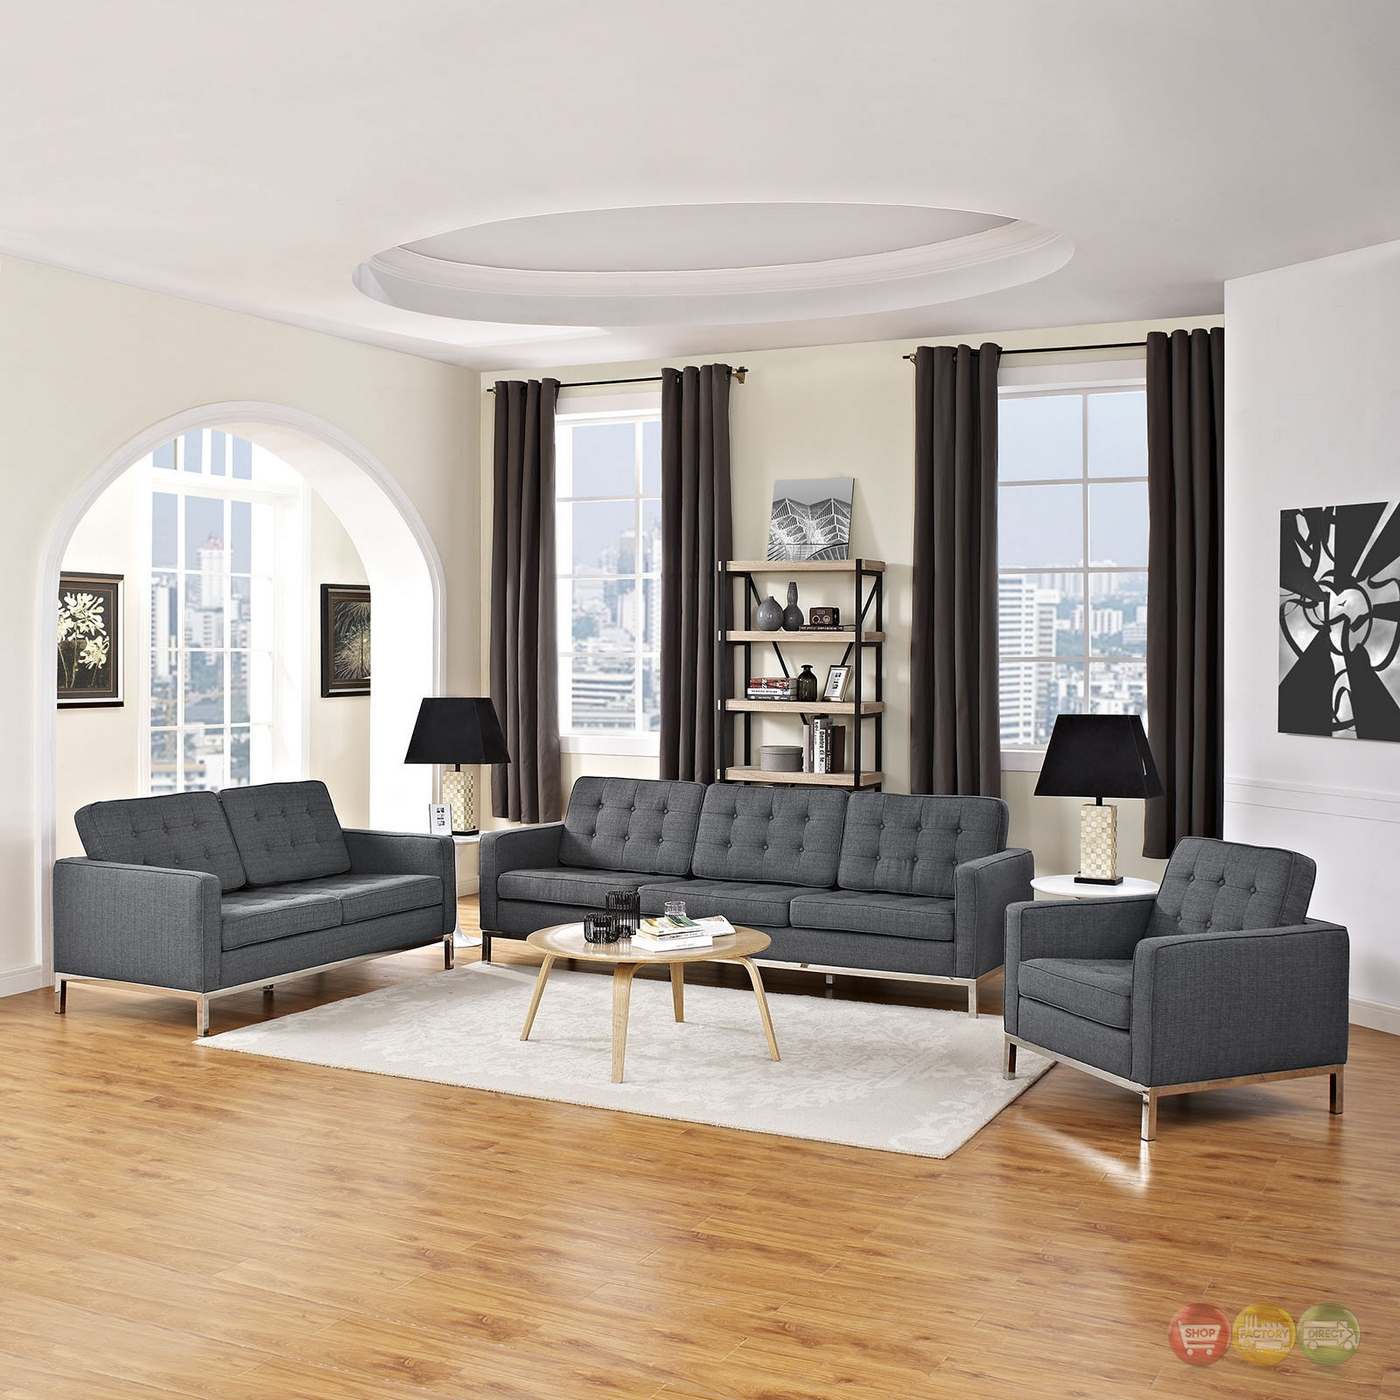 Turn your living room into a lovely space that's relaxing yet functional by selecting the right lighting. Mid-Century Modern Loft 3pc Button-Tufted Living Room Set ...